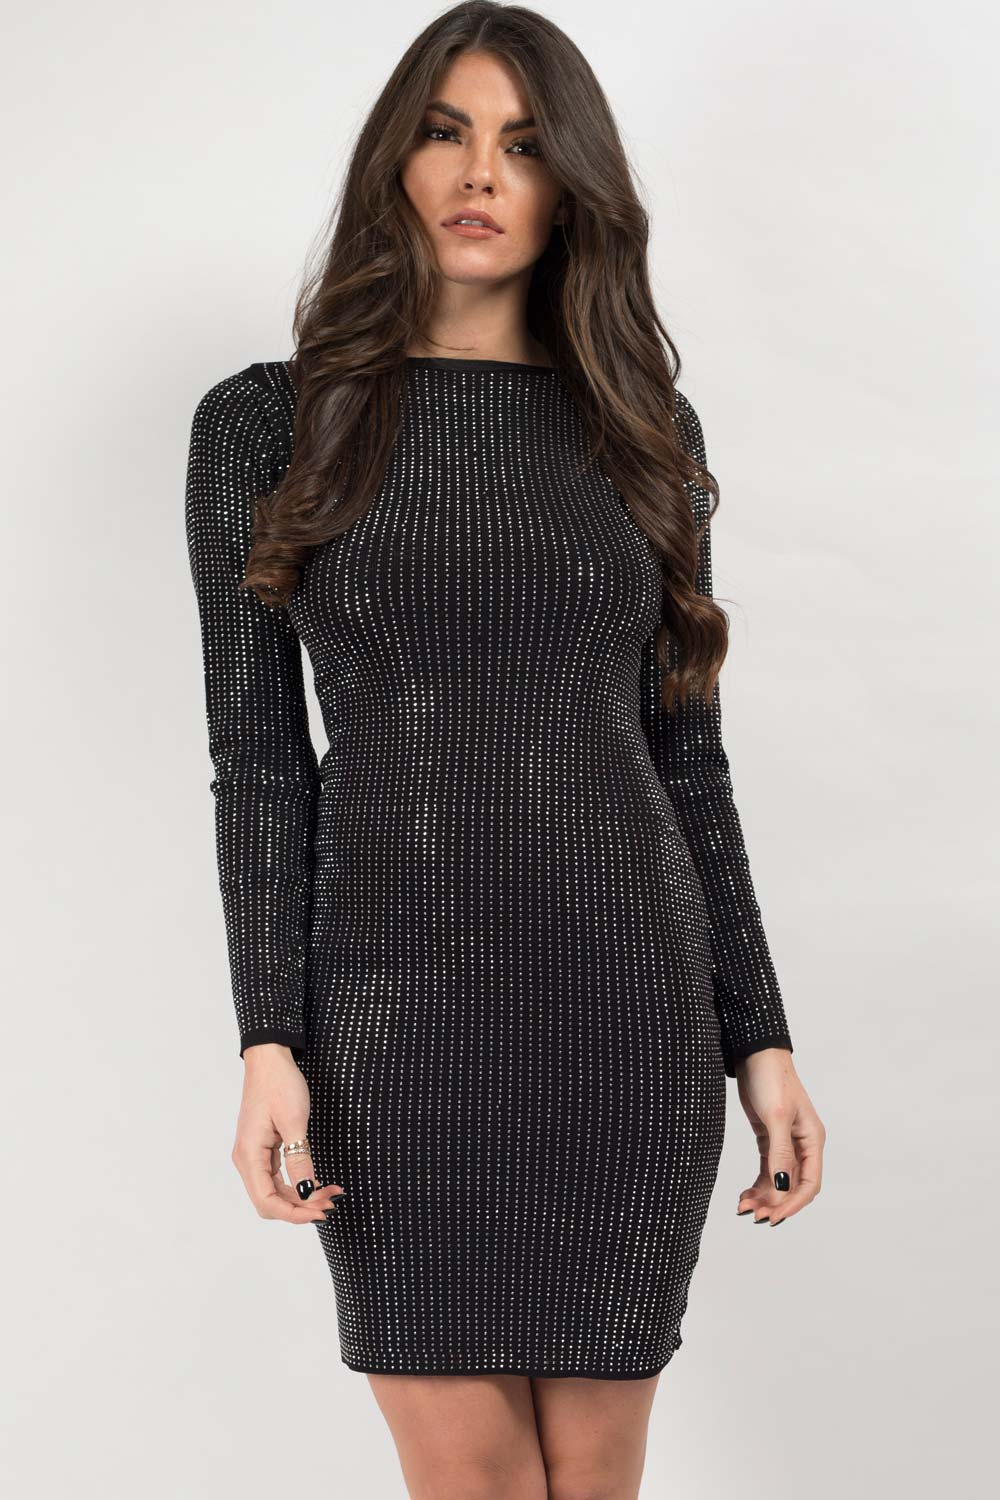 metallic sequin knitted dress